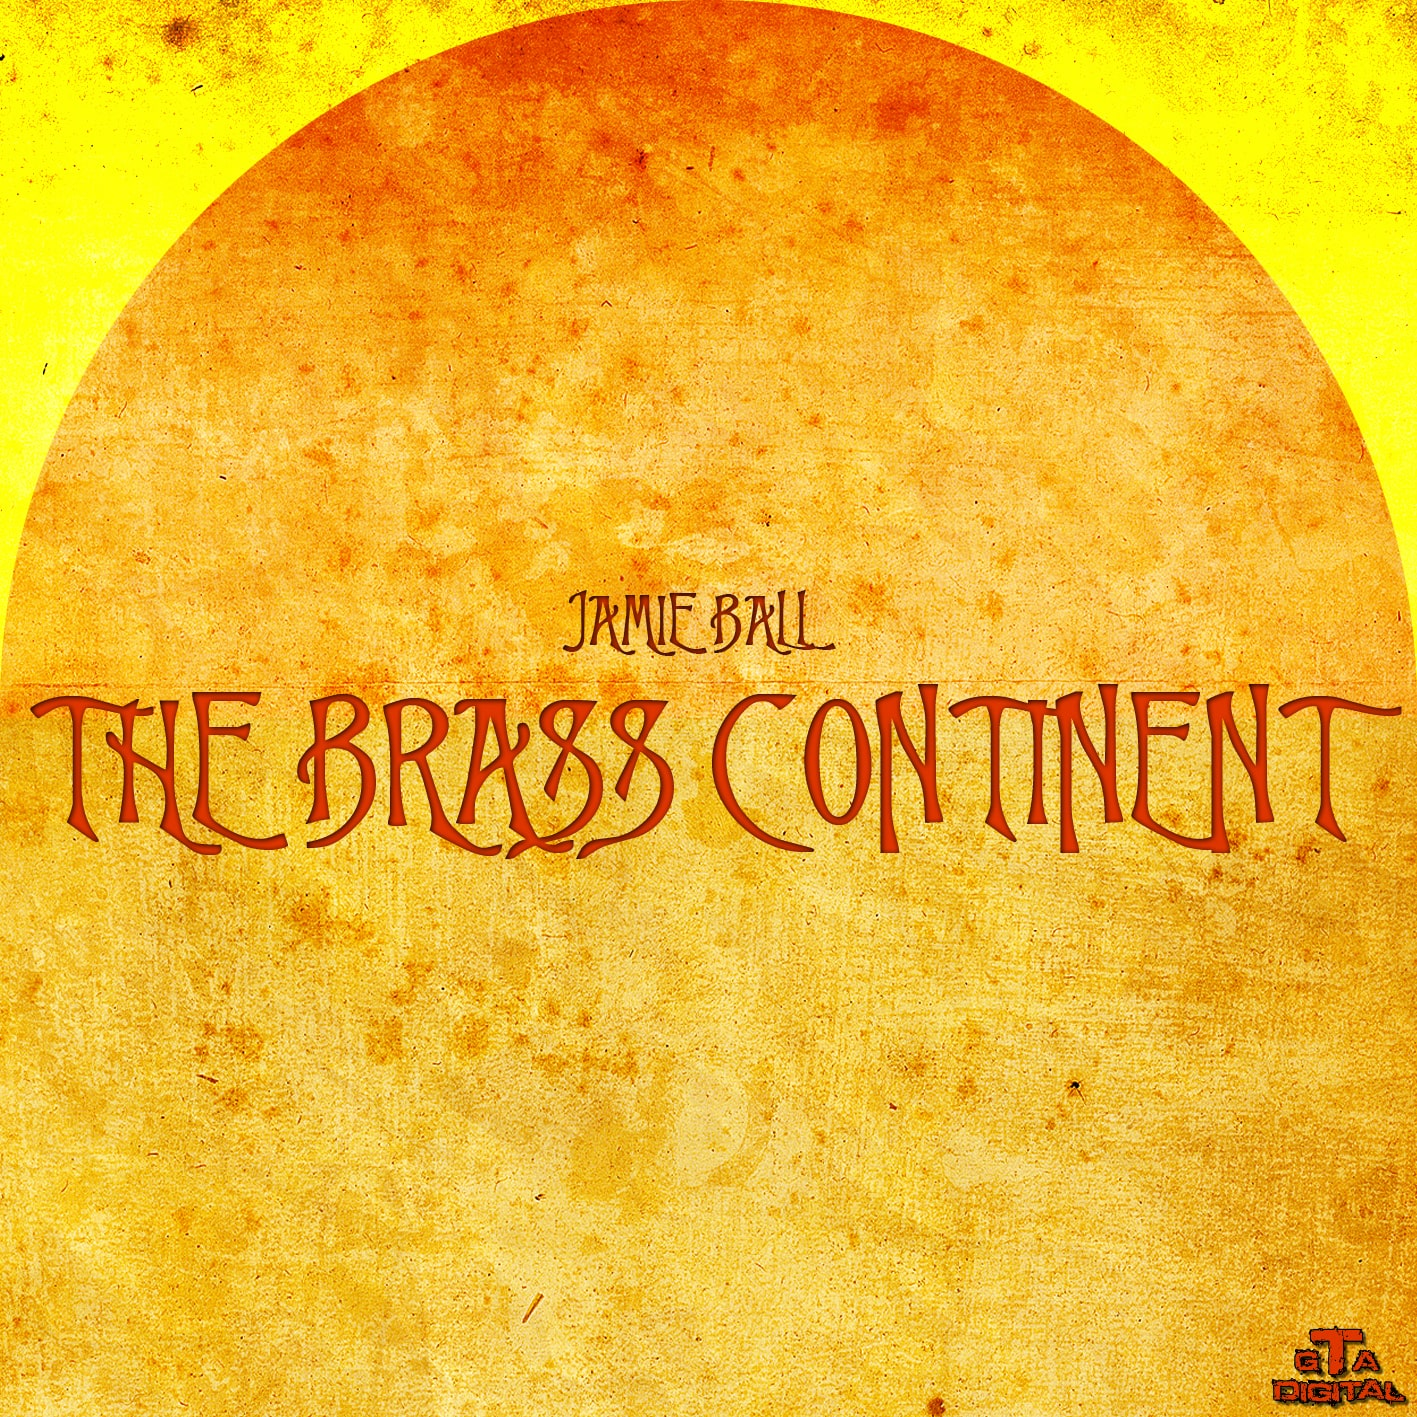 The Brass Continent